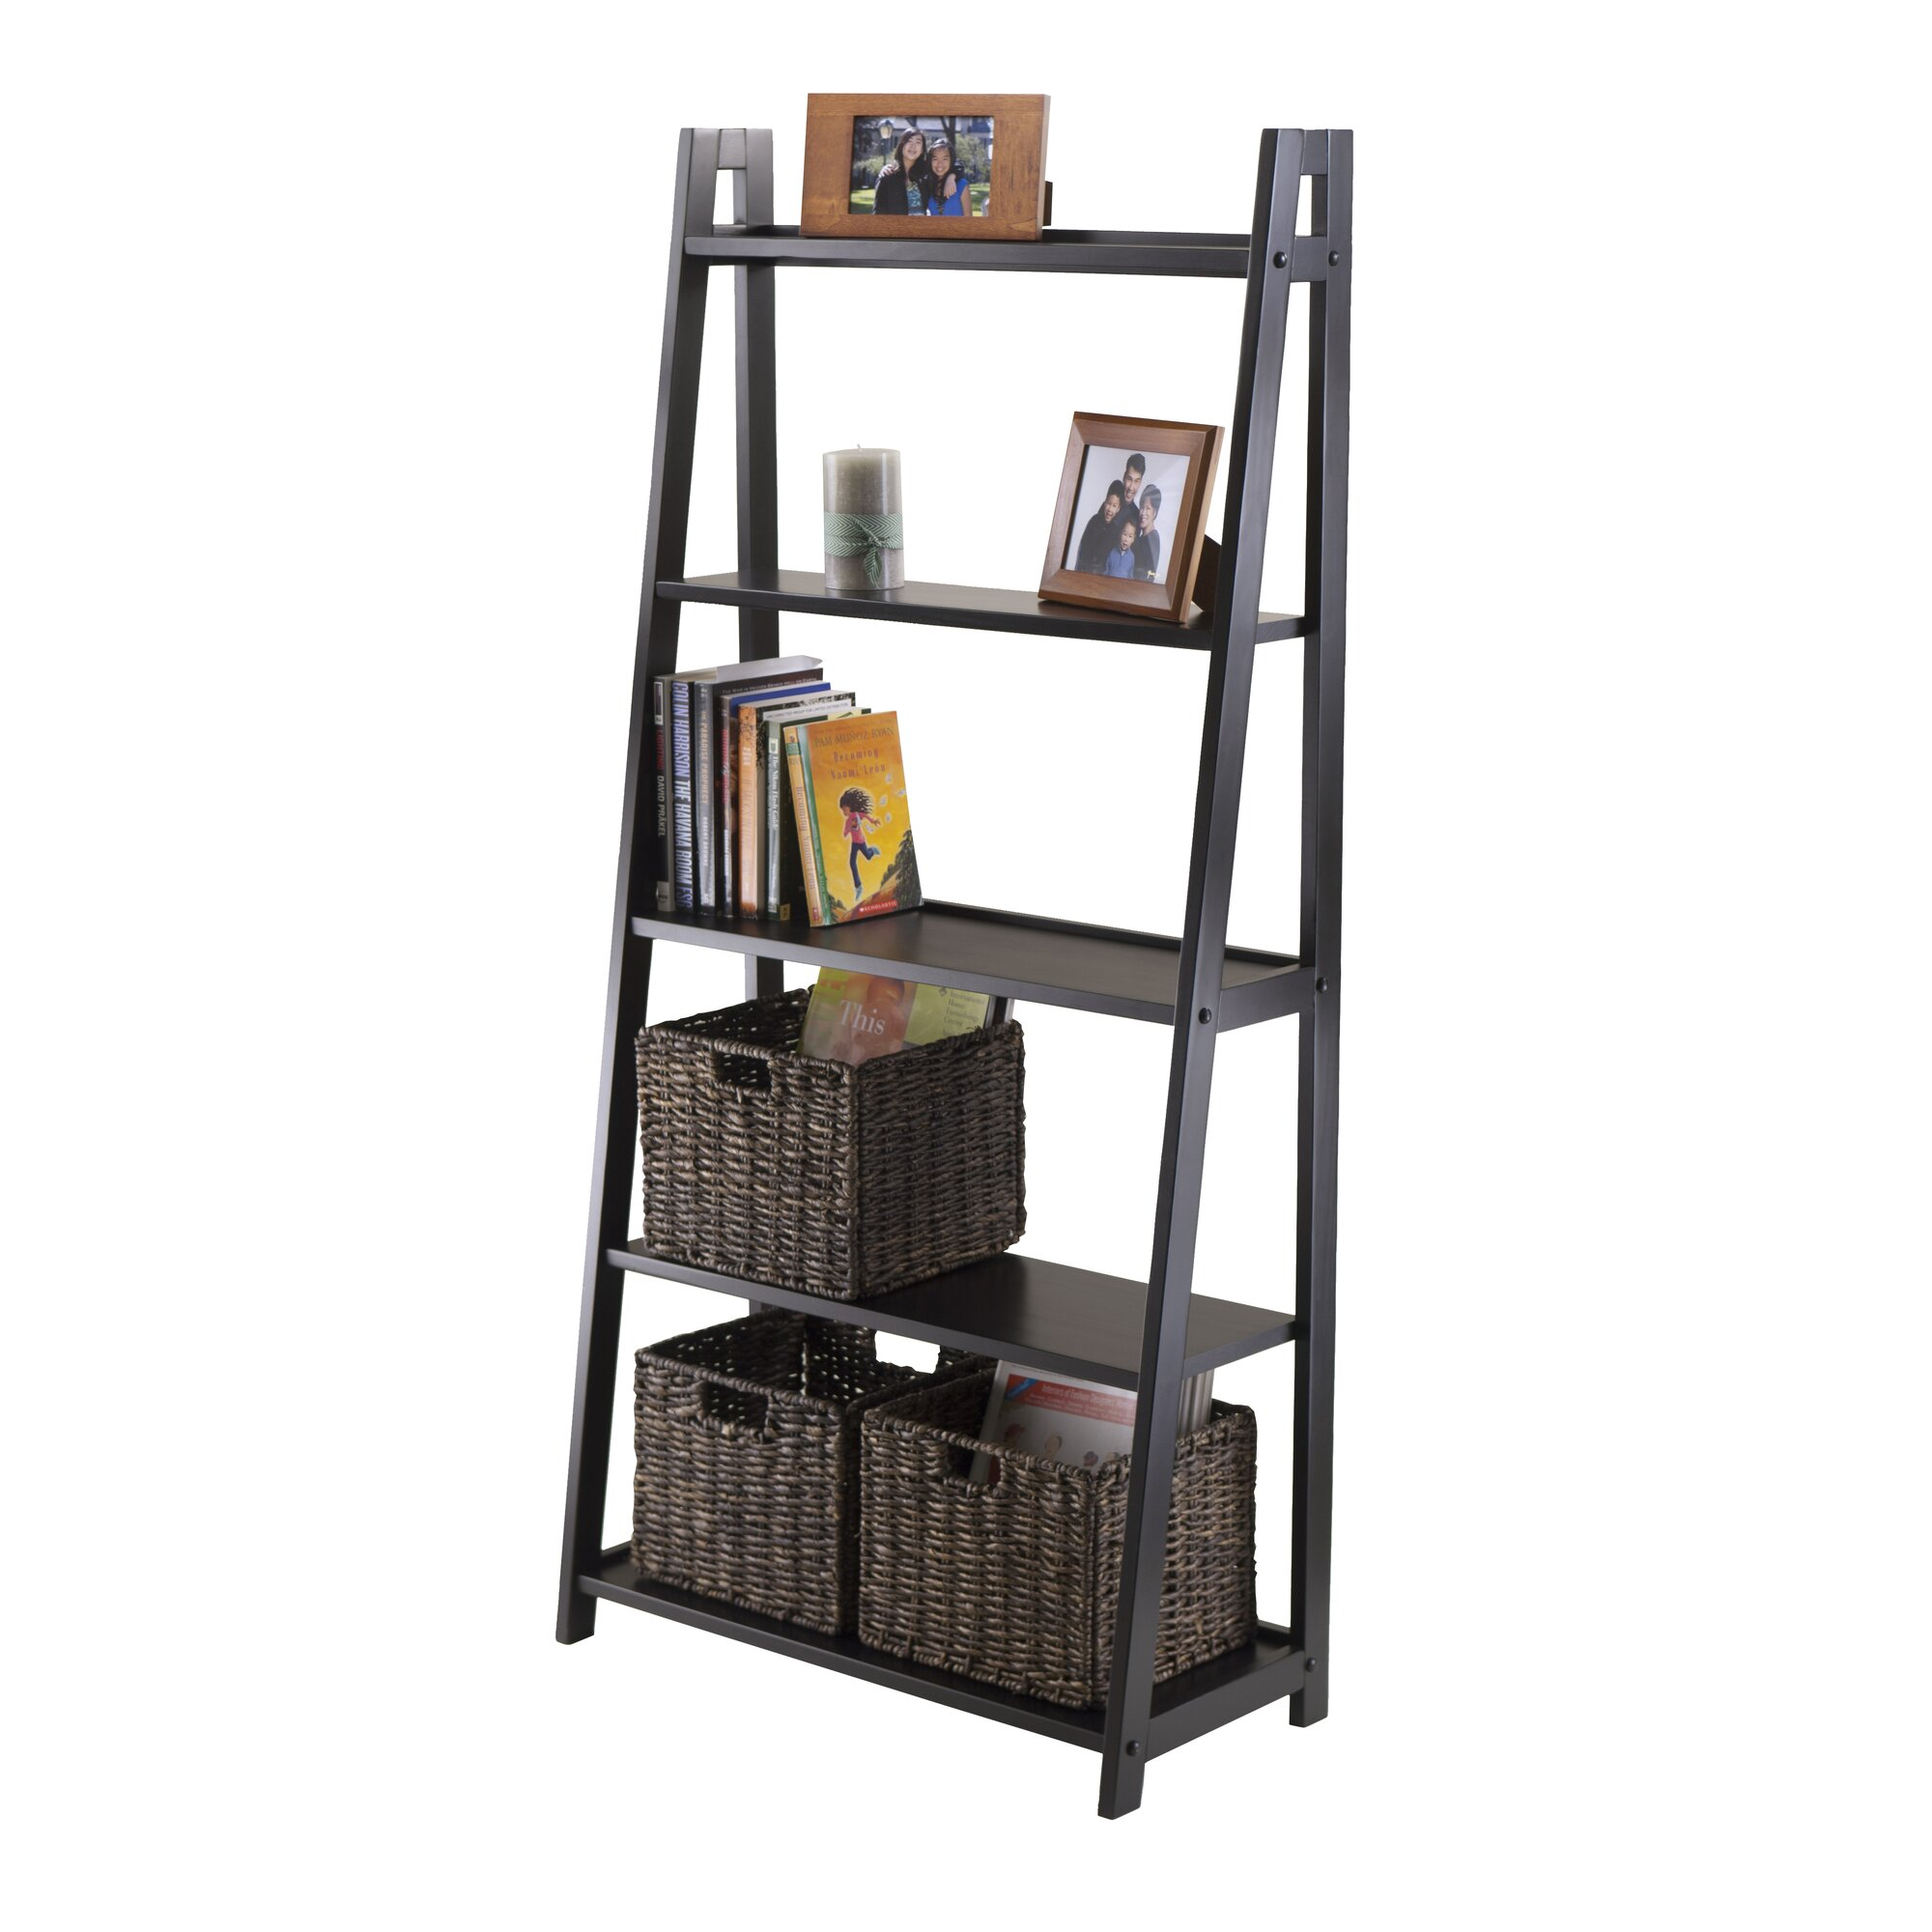 media wood garden espresso today free cube grain tower finish rotating bookcase home product shipping overstock